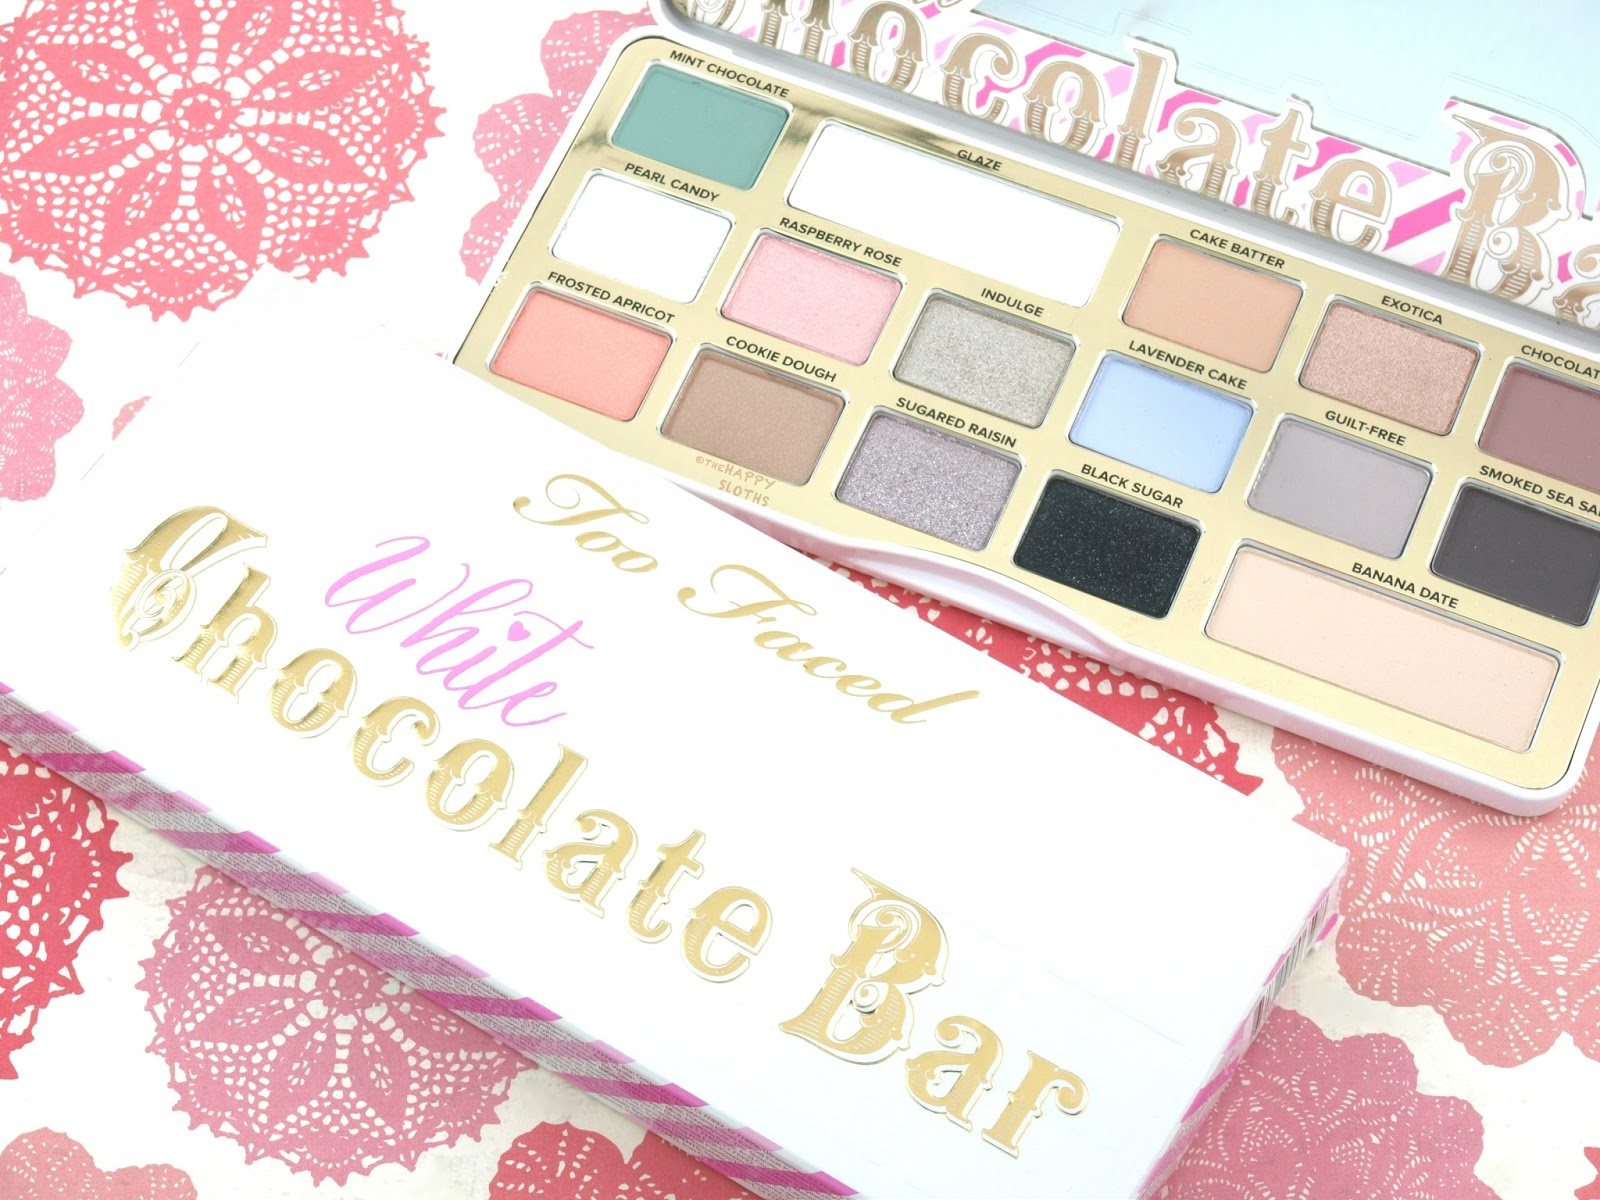 Too Faced White Chocolate Bar Eyeshadow Palette: Review and Swatches